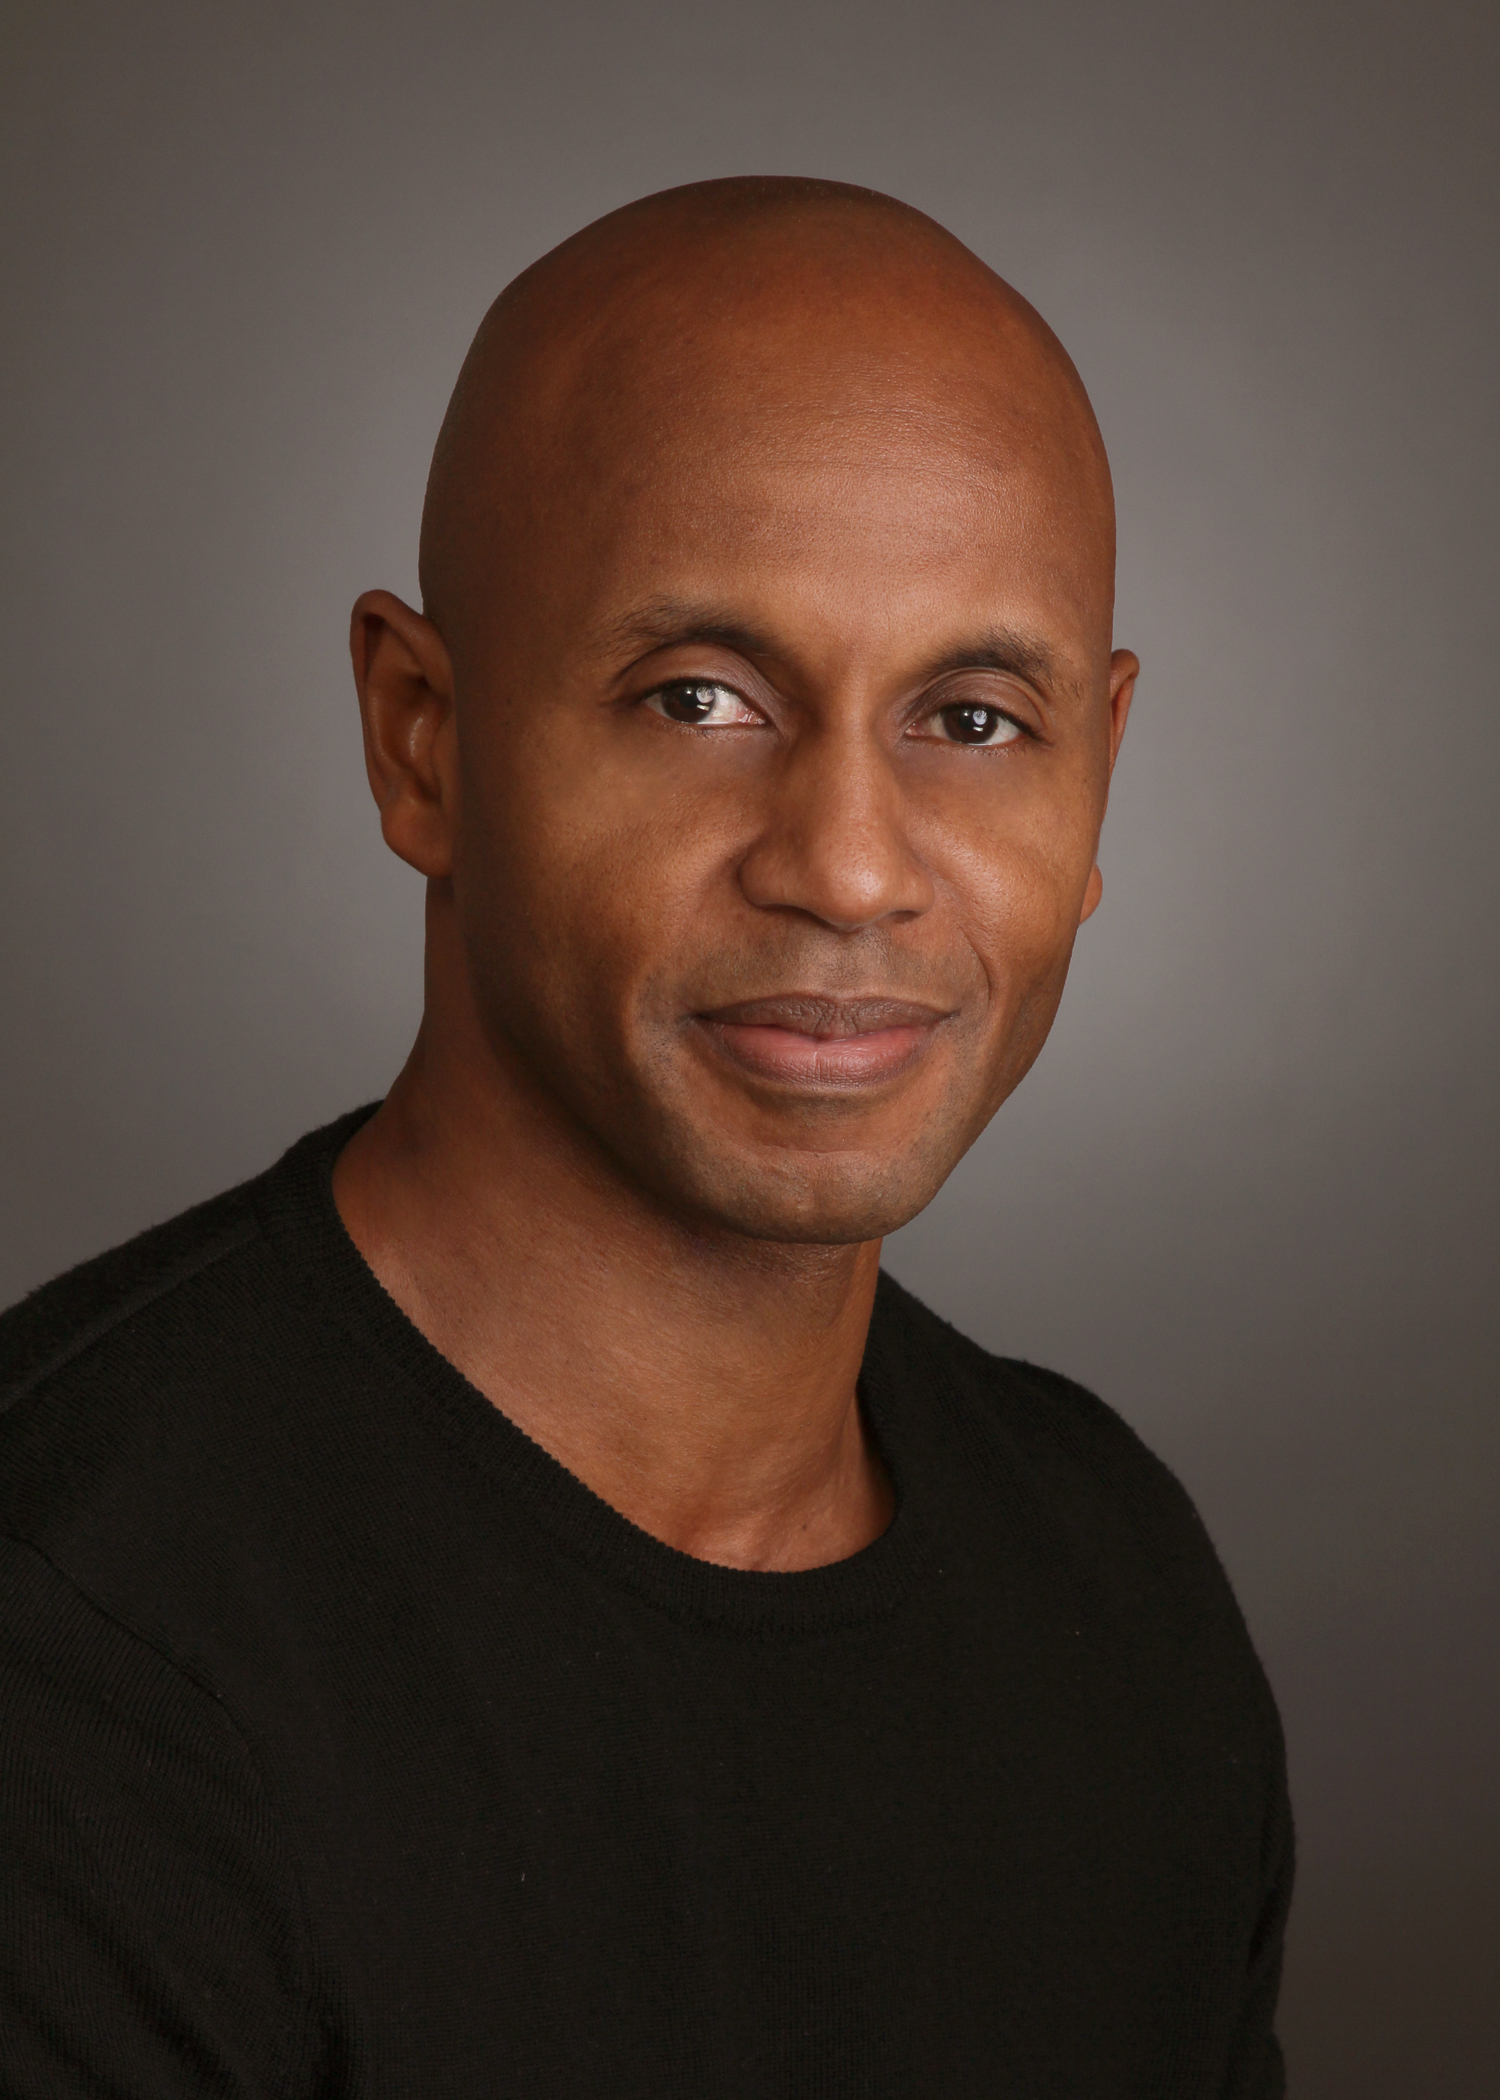 Gavin Stewart, co-founder and CEO of NavaFit